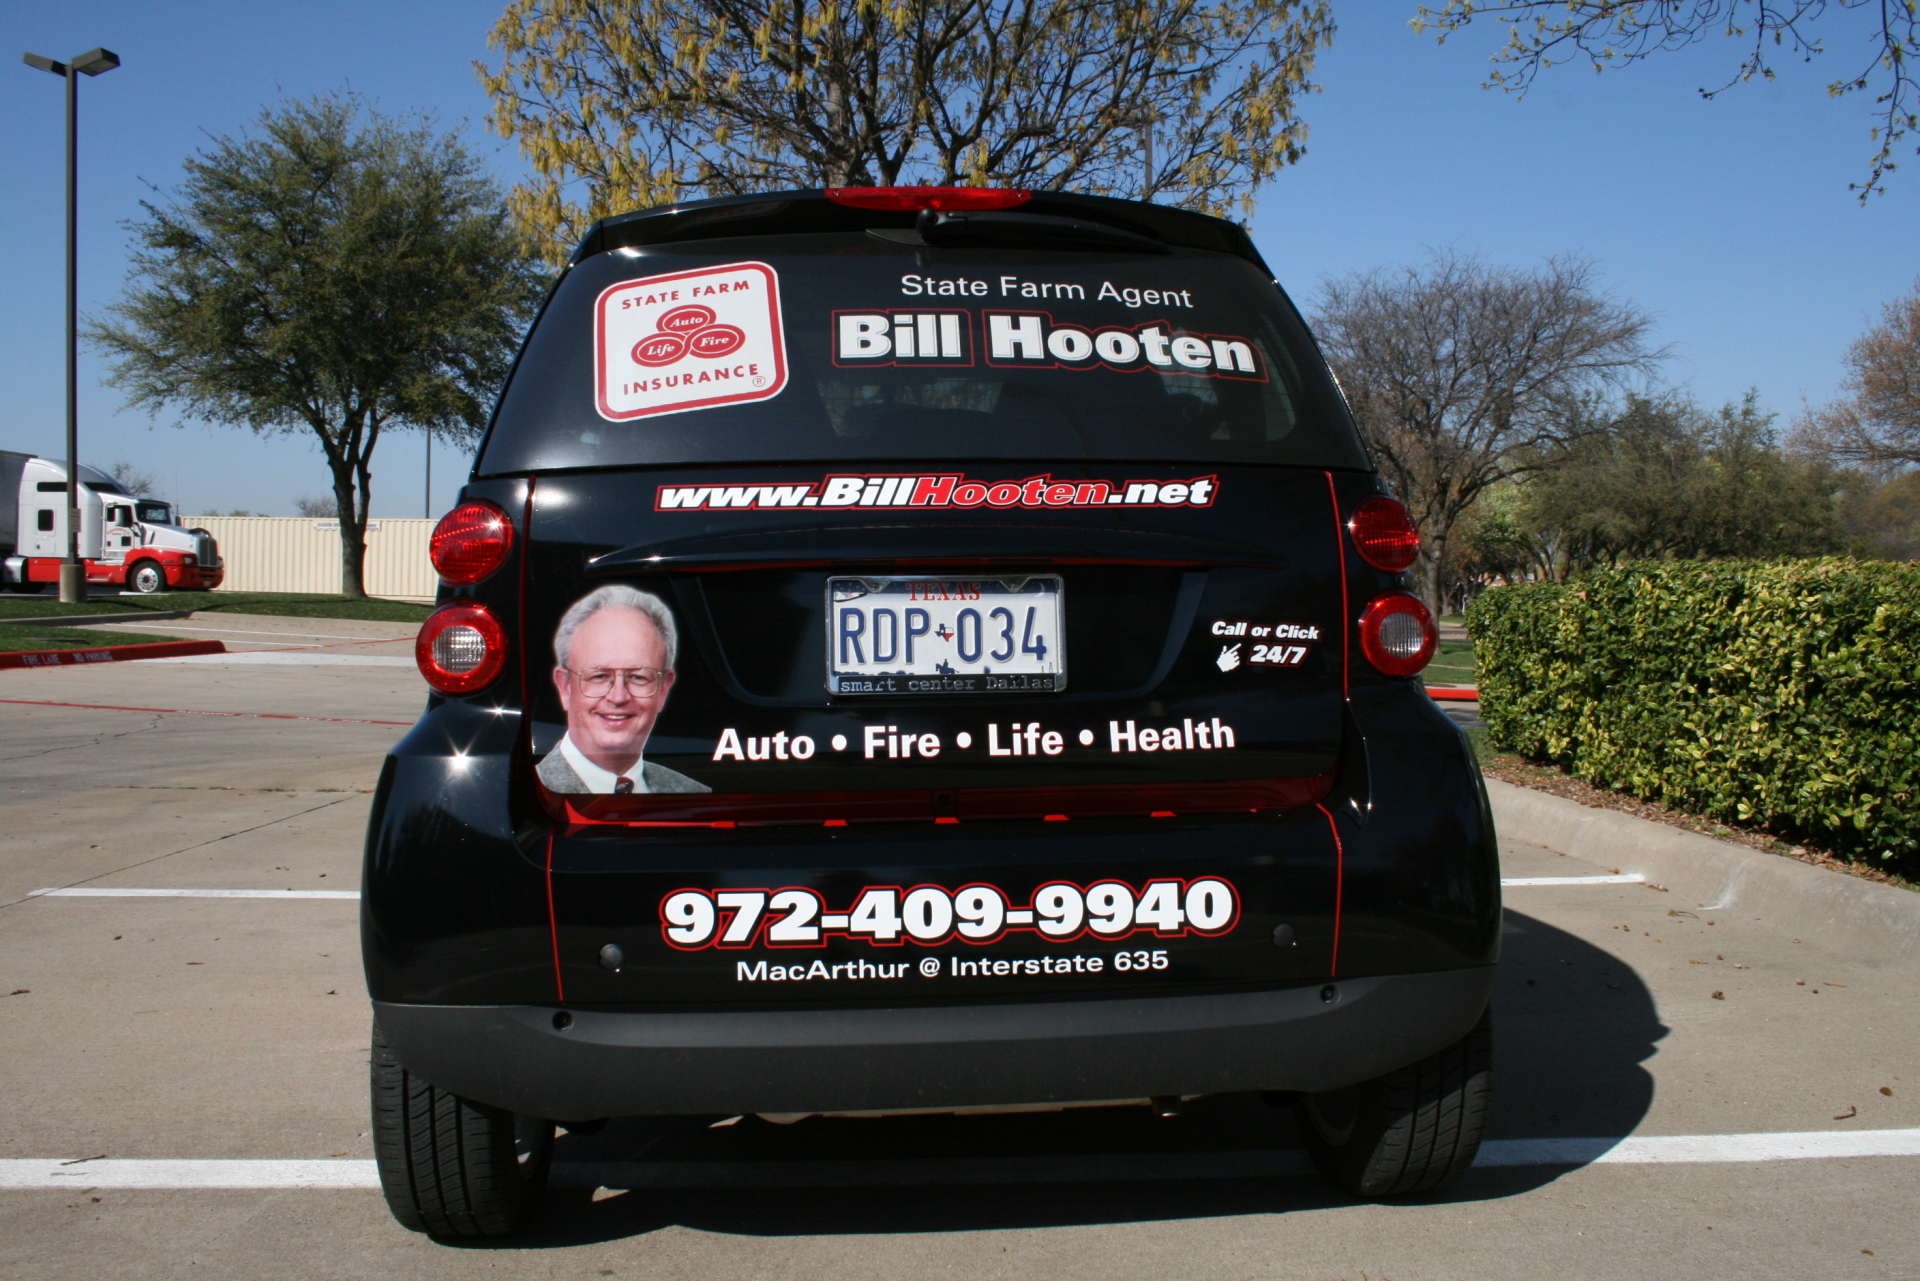 State Farm Agent Bill Hooten, State Farm Wraps, Vehicle Wraps Dallas TX